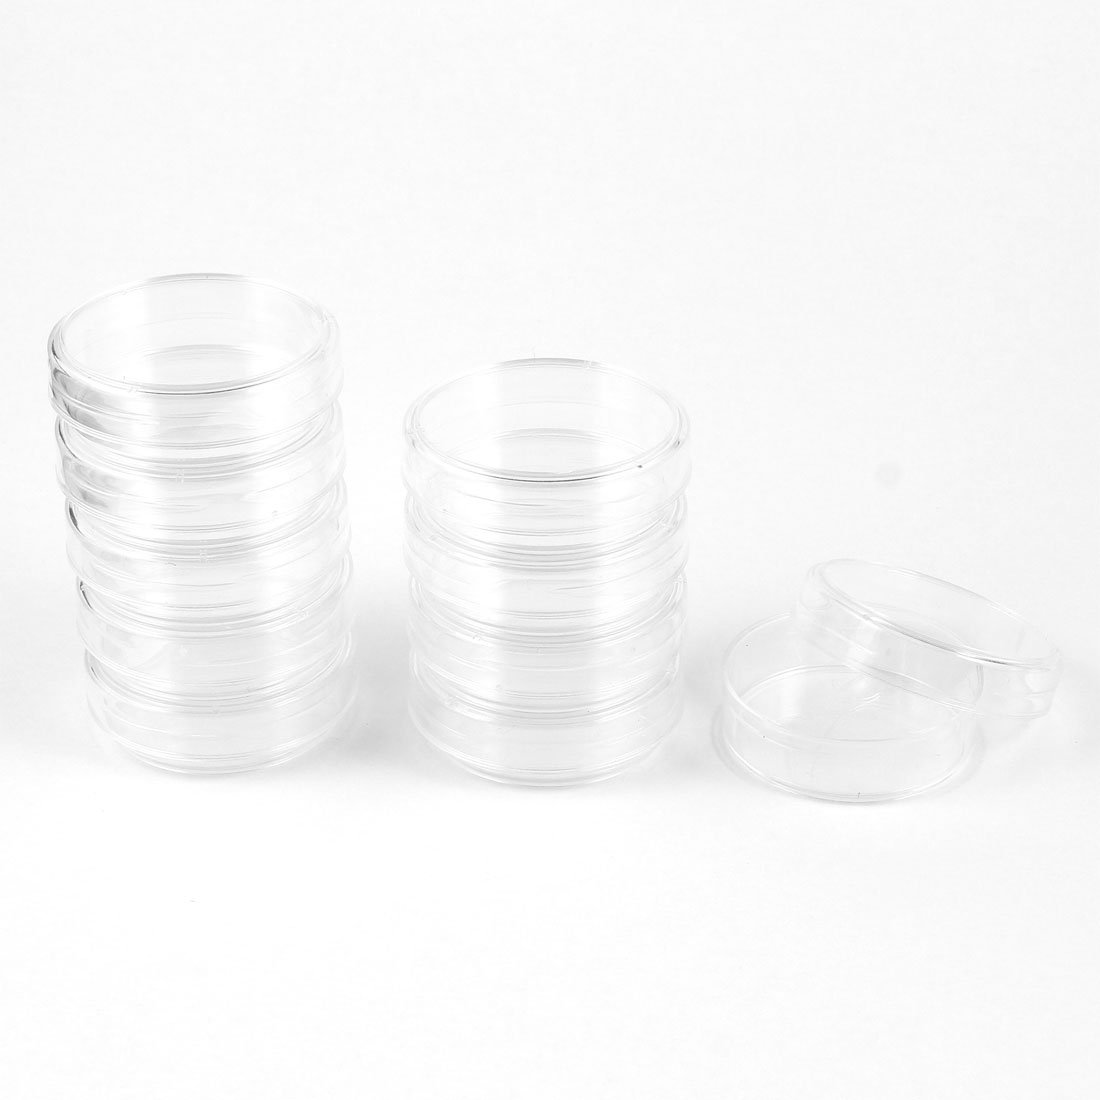 Sourcingmap Chemical Experiment 38mm Dia Rounded Shape Cell Culture Dish Clear 10 Pcs